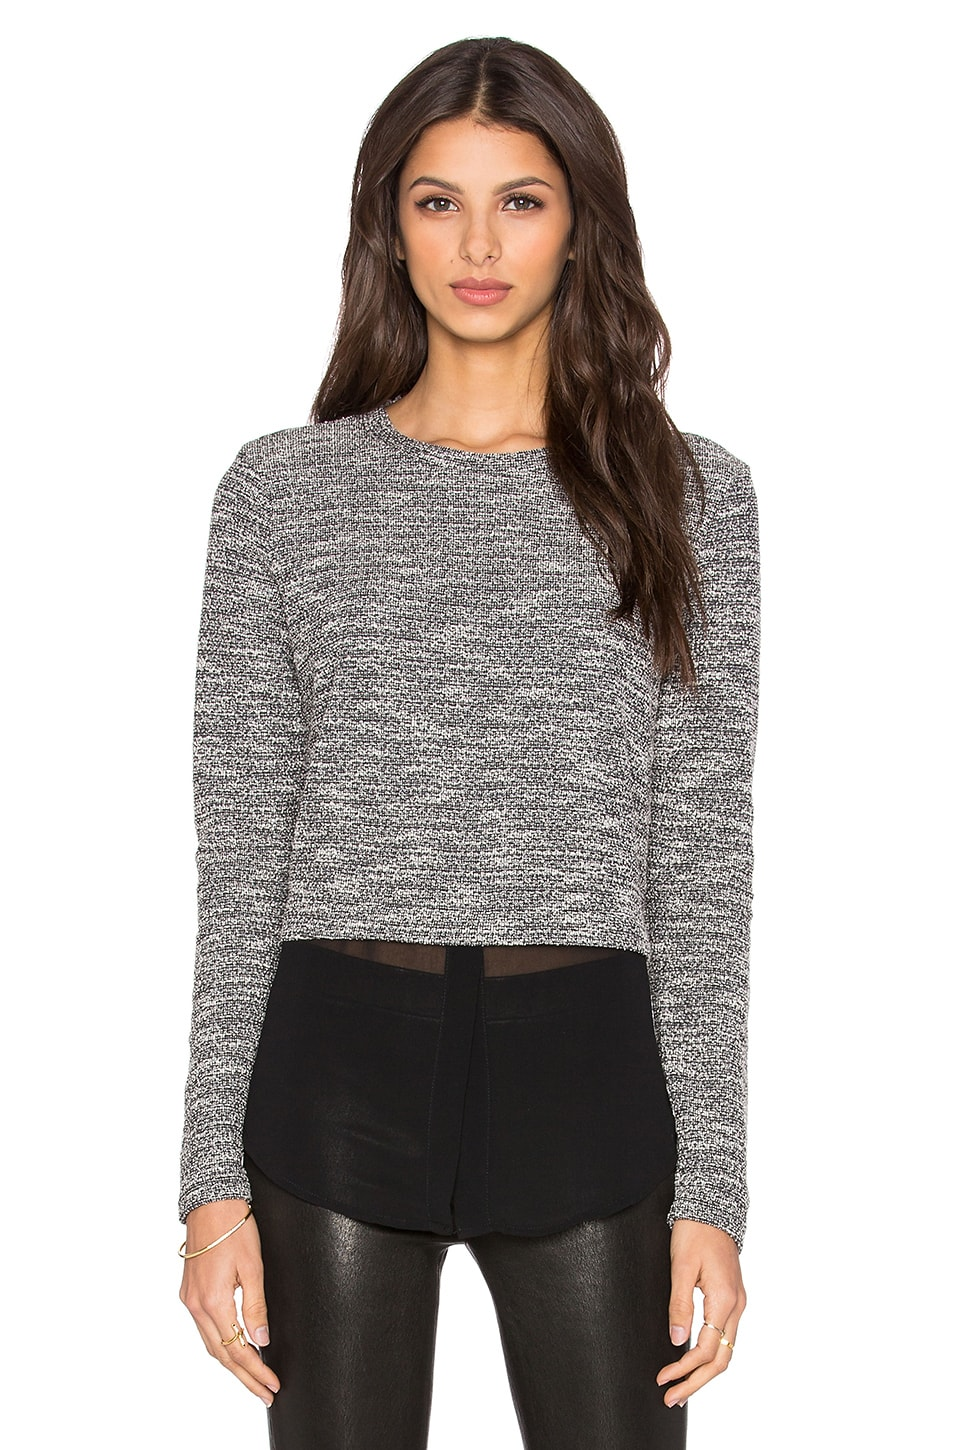 Michael Stars Chiffon Shirt Long Sleeve Top in Tweed